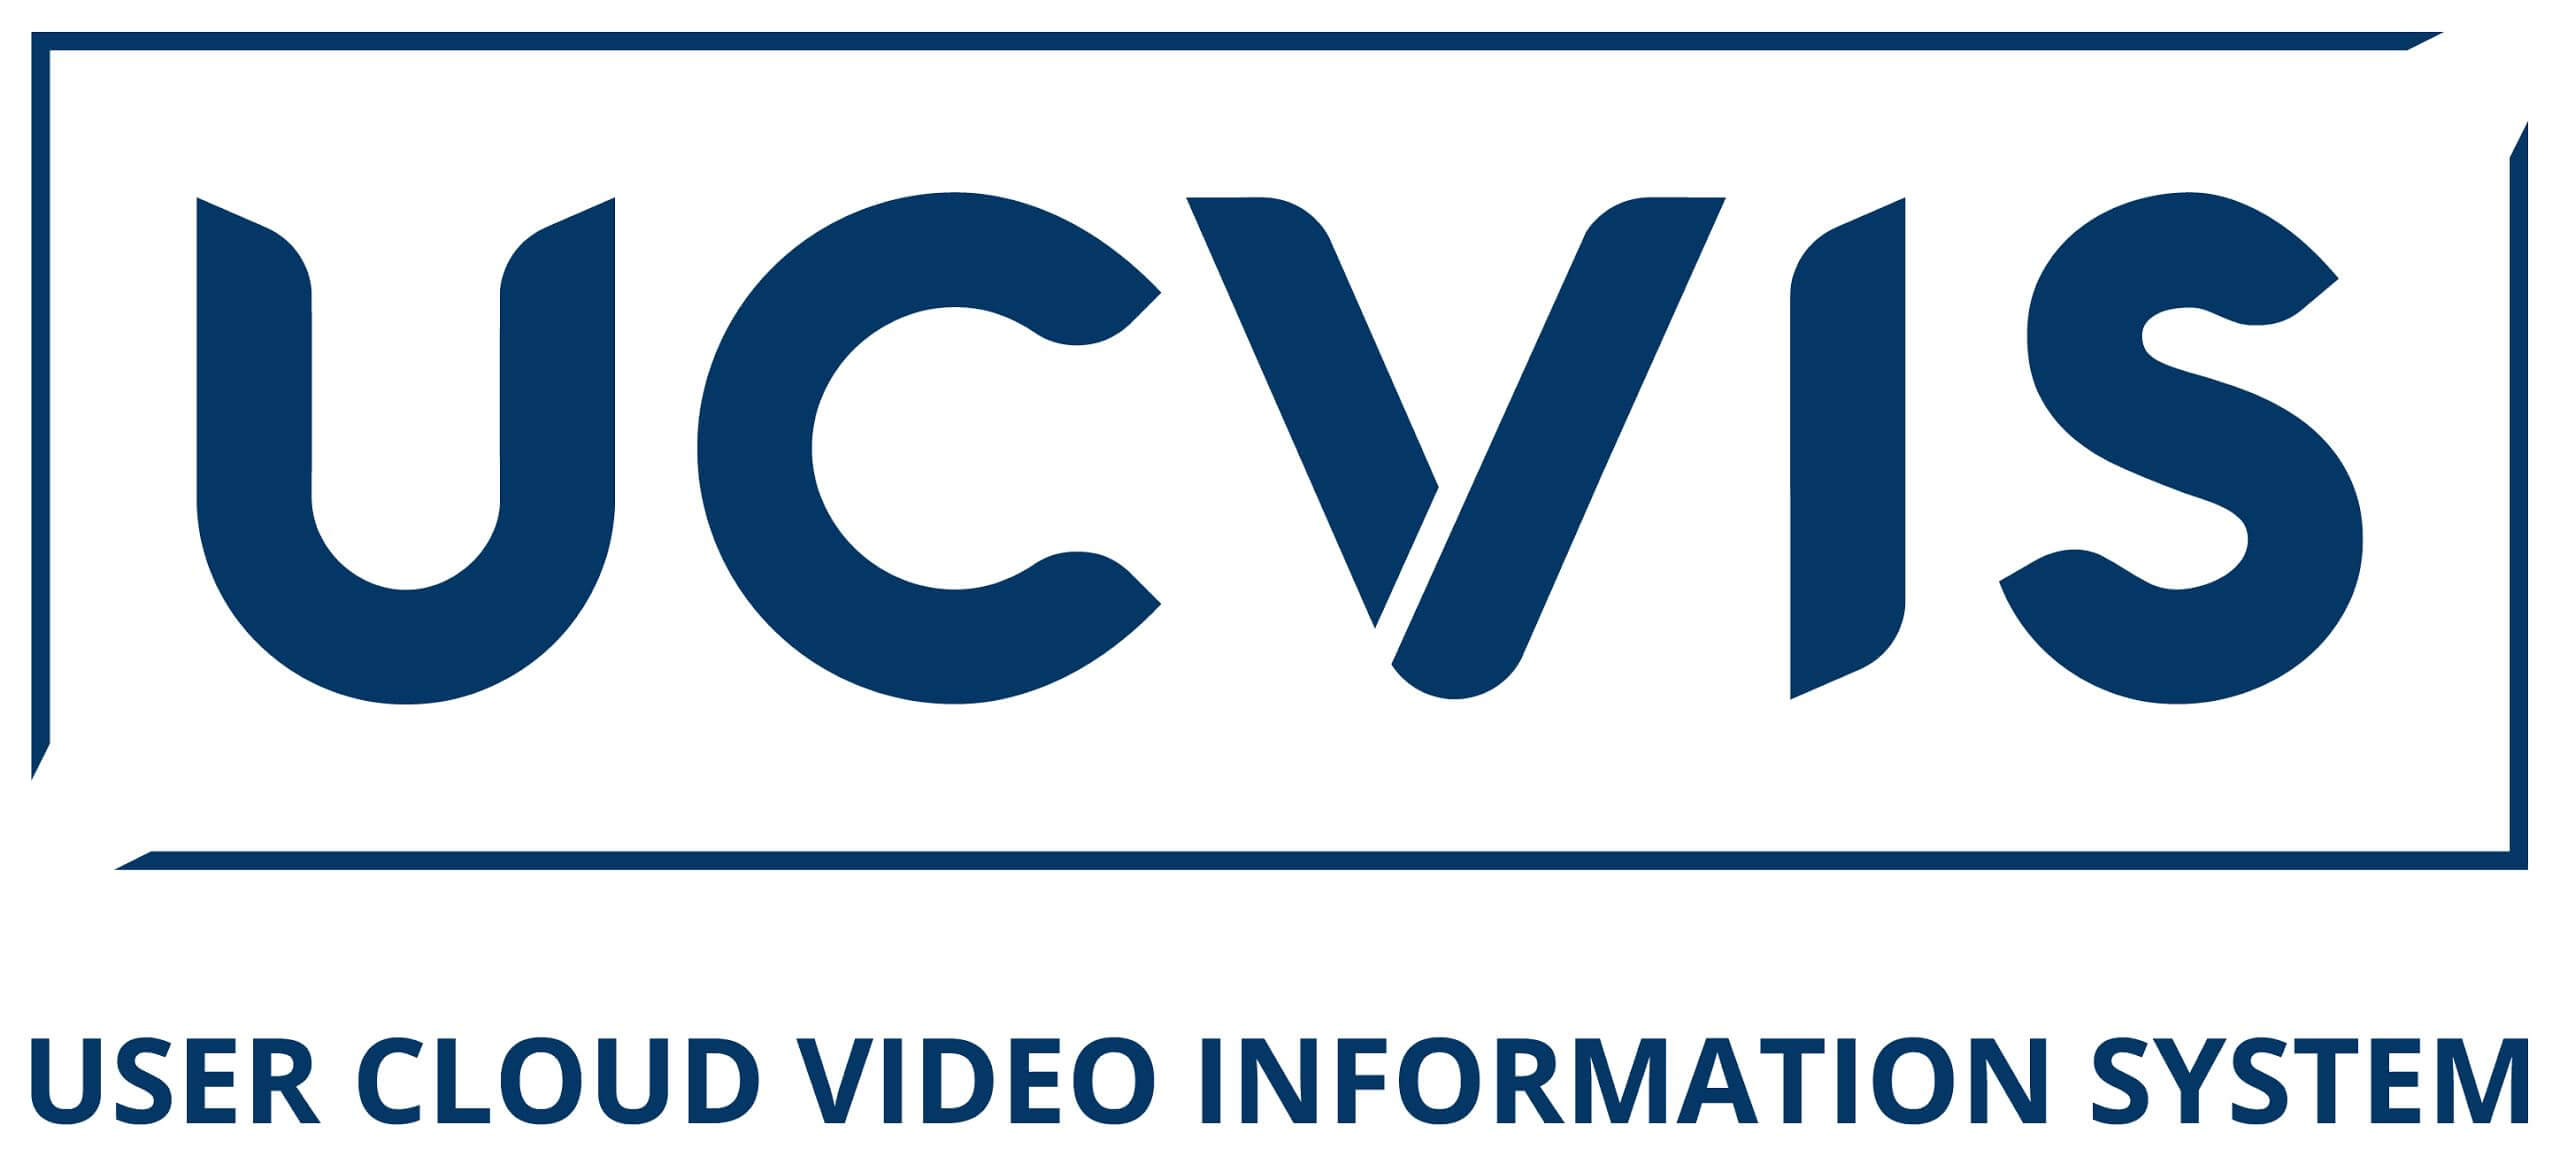 User Cloud Video Information System - Logo